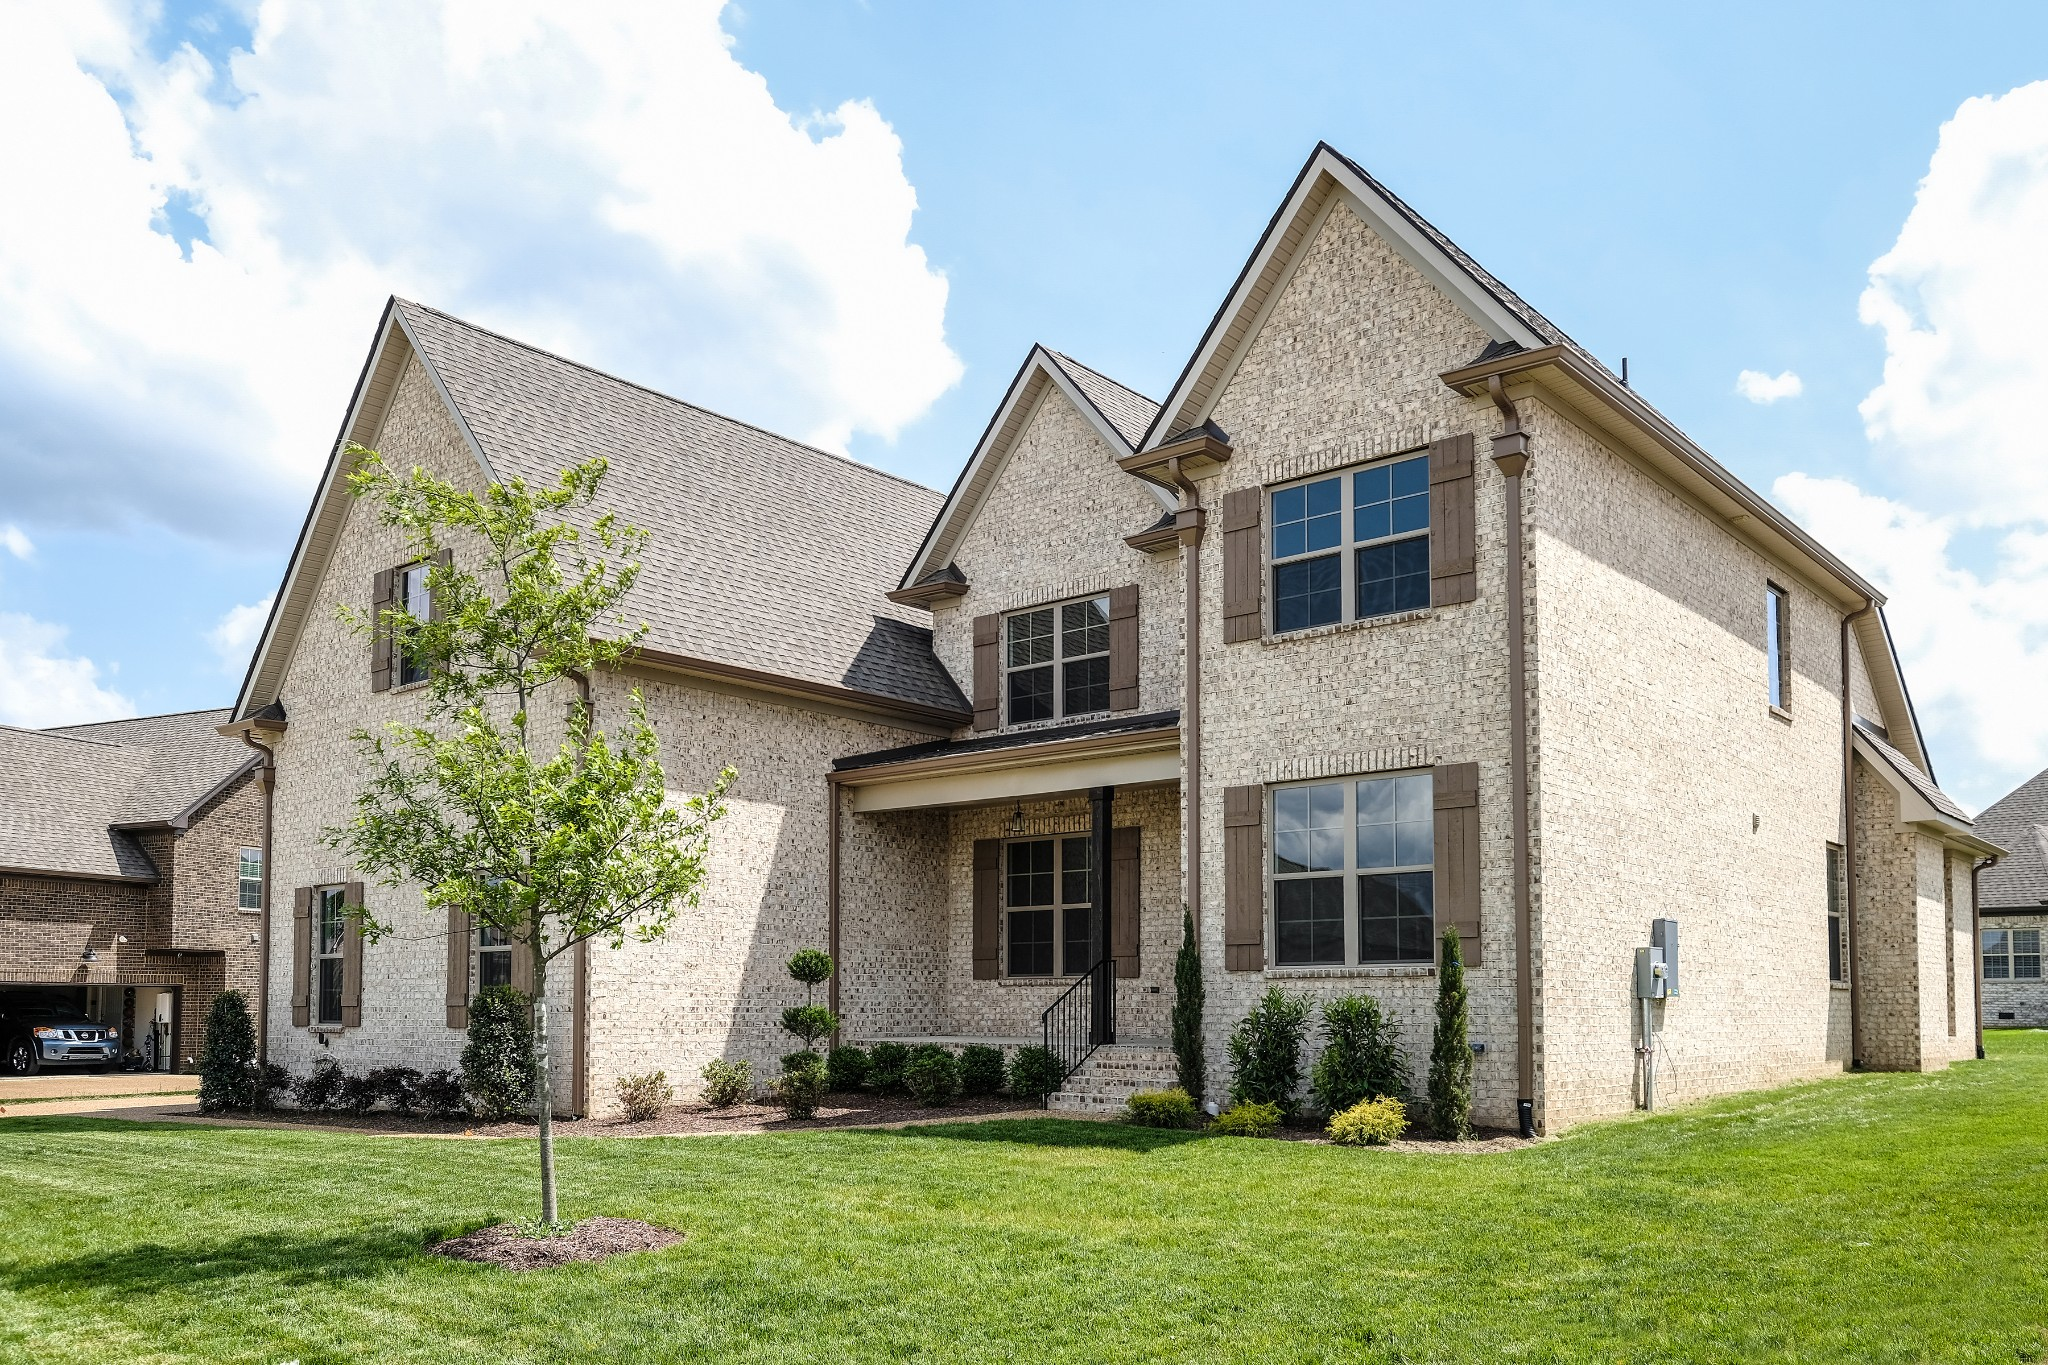 5007 Brill Lane (Lot 283), Spring Hill, Tennessee